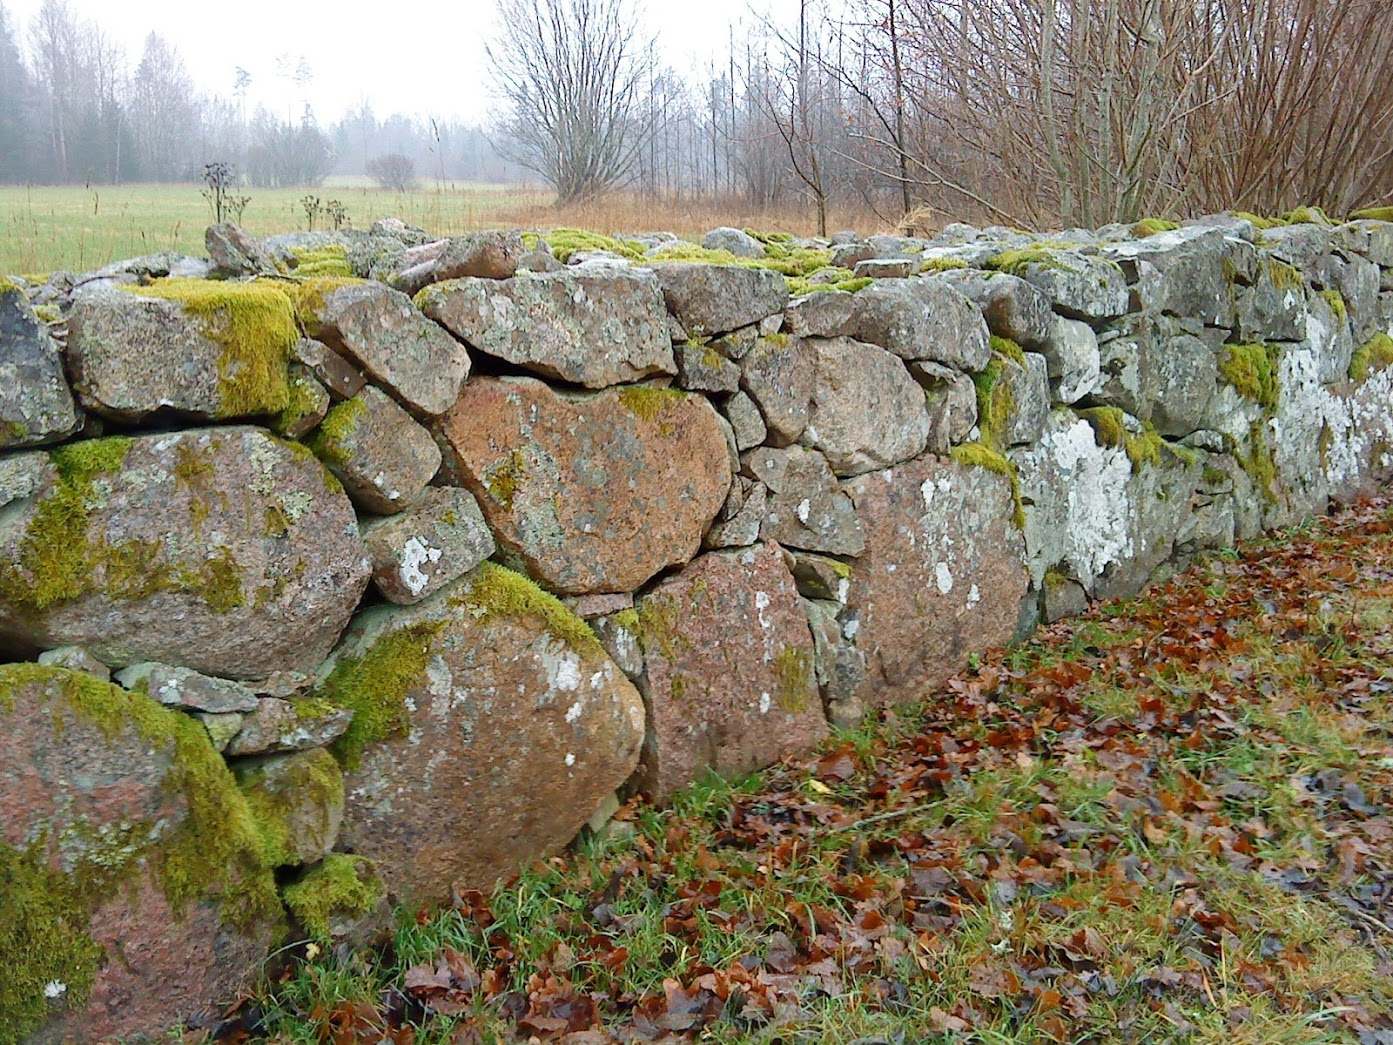 Typical Småland-ish (name province arround Lammhult) stone wall. Need to go deep to manage the ground frost in the winter.